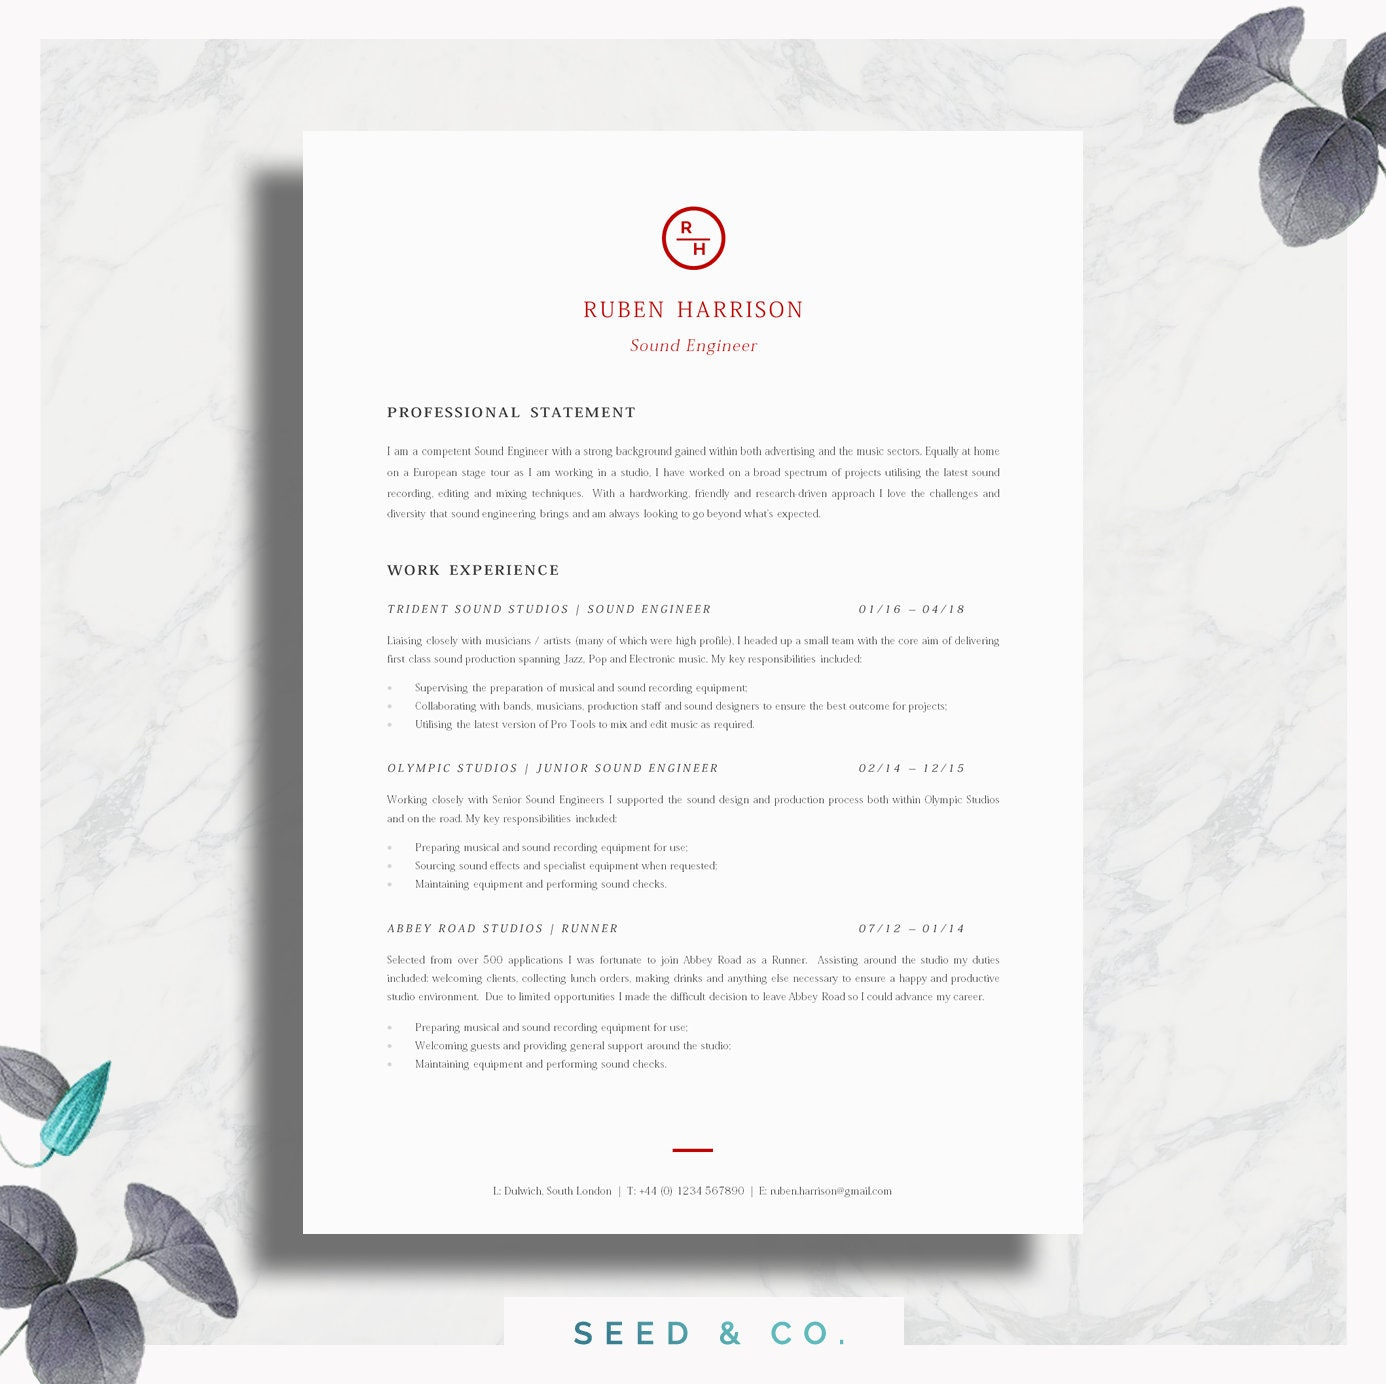 CV Template | Professional Resume Template | Professional CV + Cover Letter  + Advice | Printable for Word | The